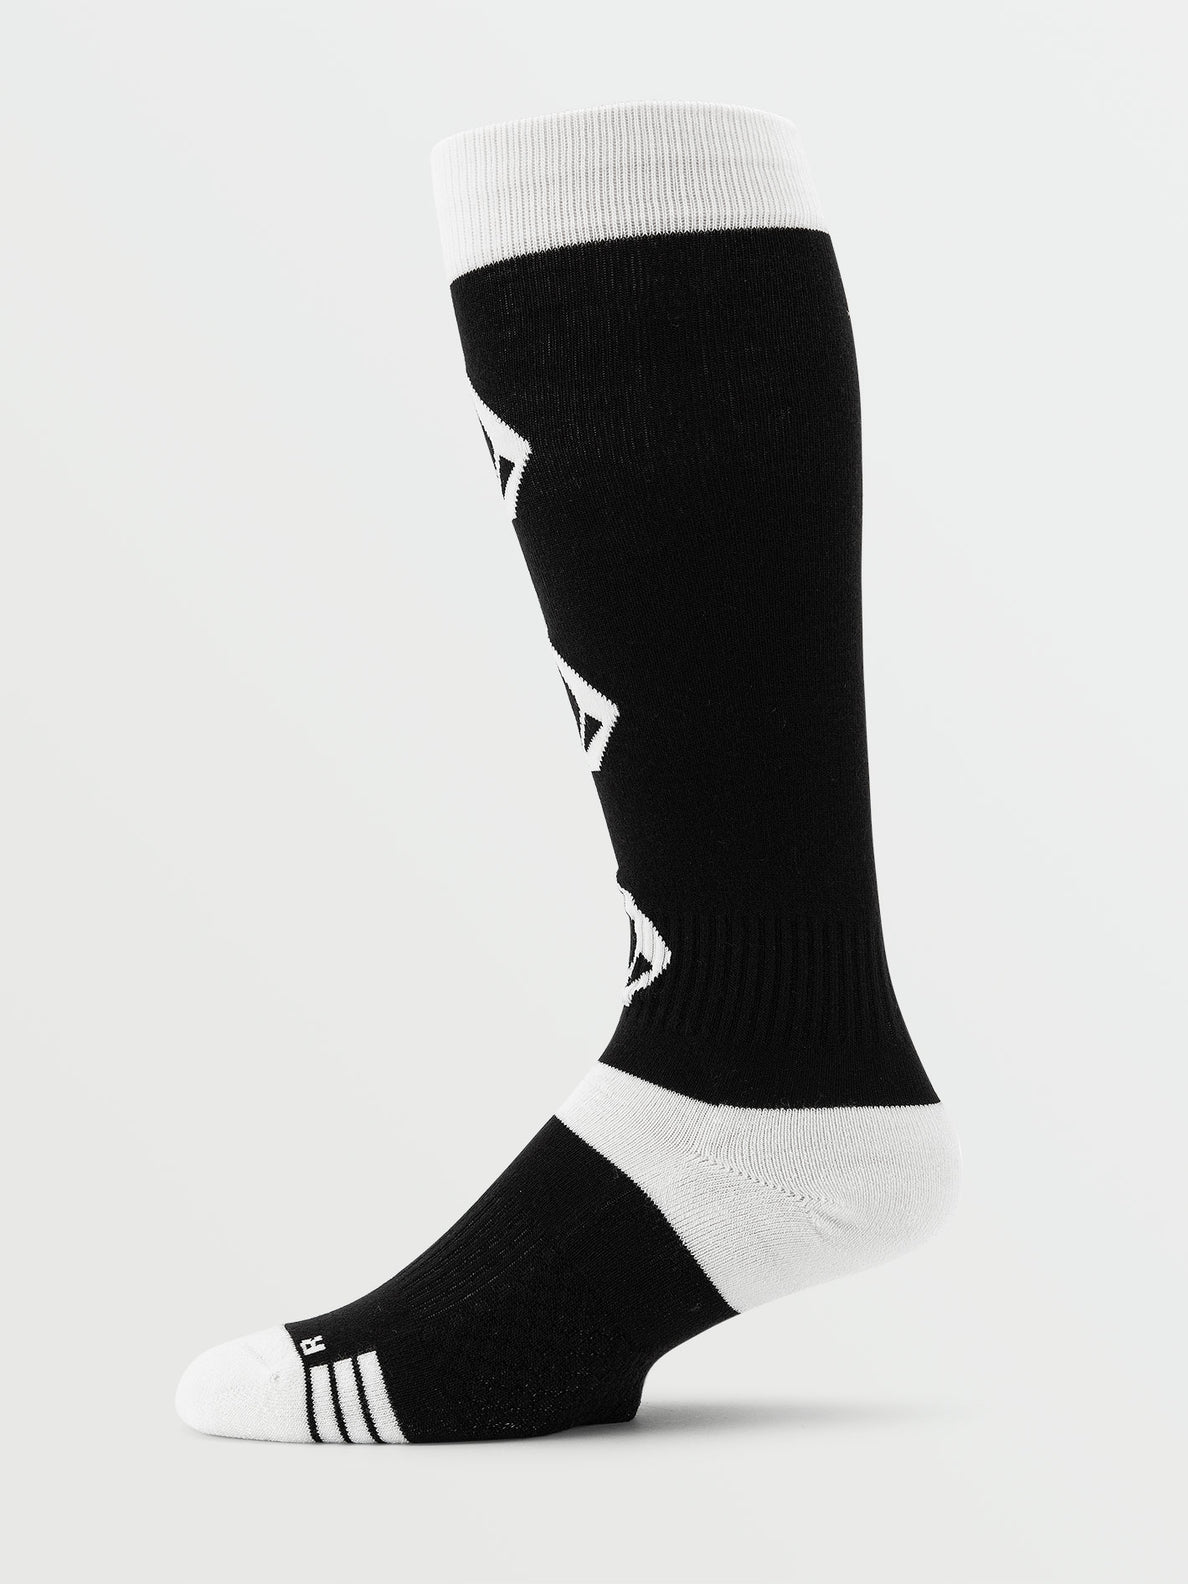 LODGE SOCK - BLACK (J6352102_BLK) [1]